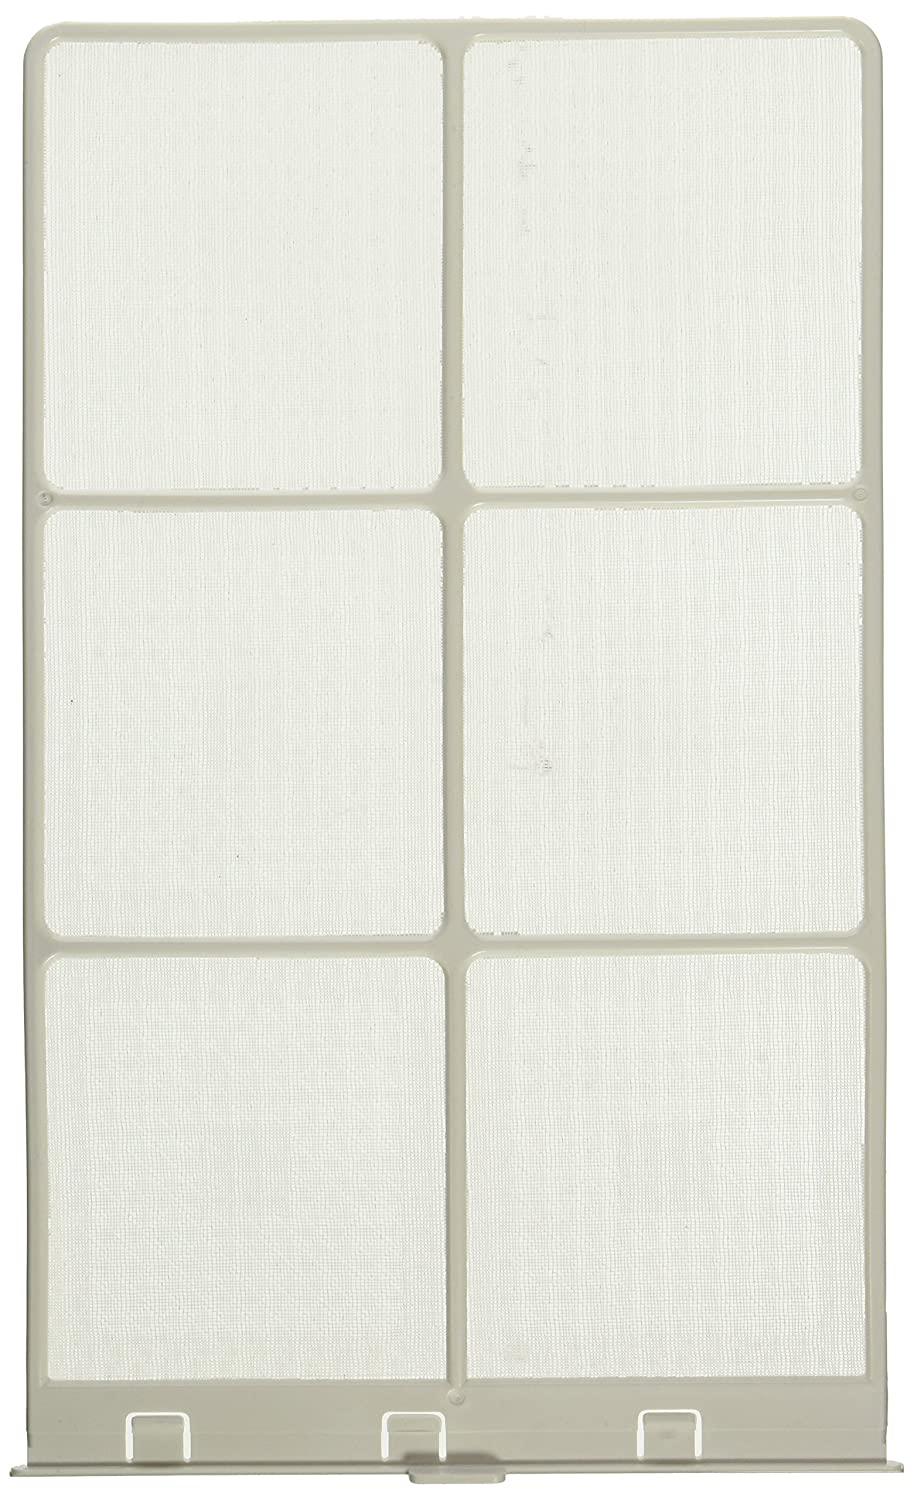 Frigidaire 5304472188 Air Conditioner Filter